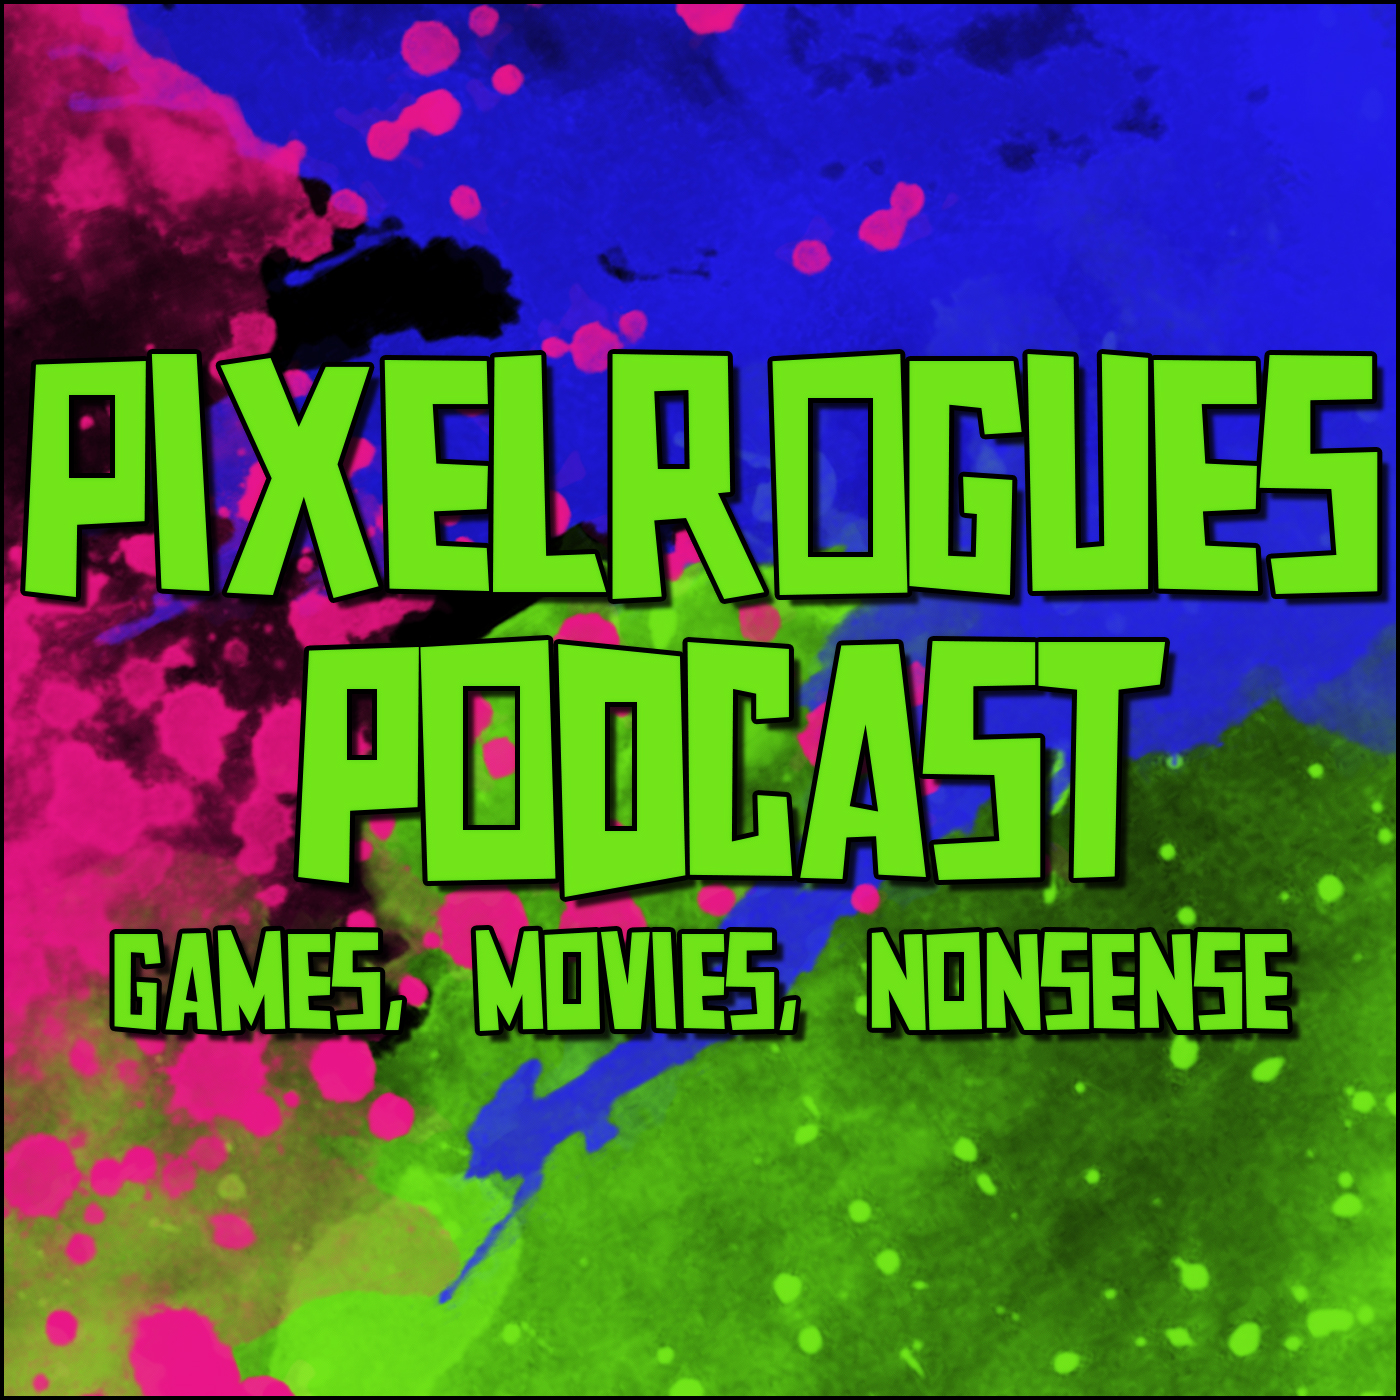 PixelRogues Podcast